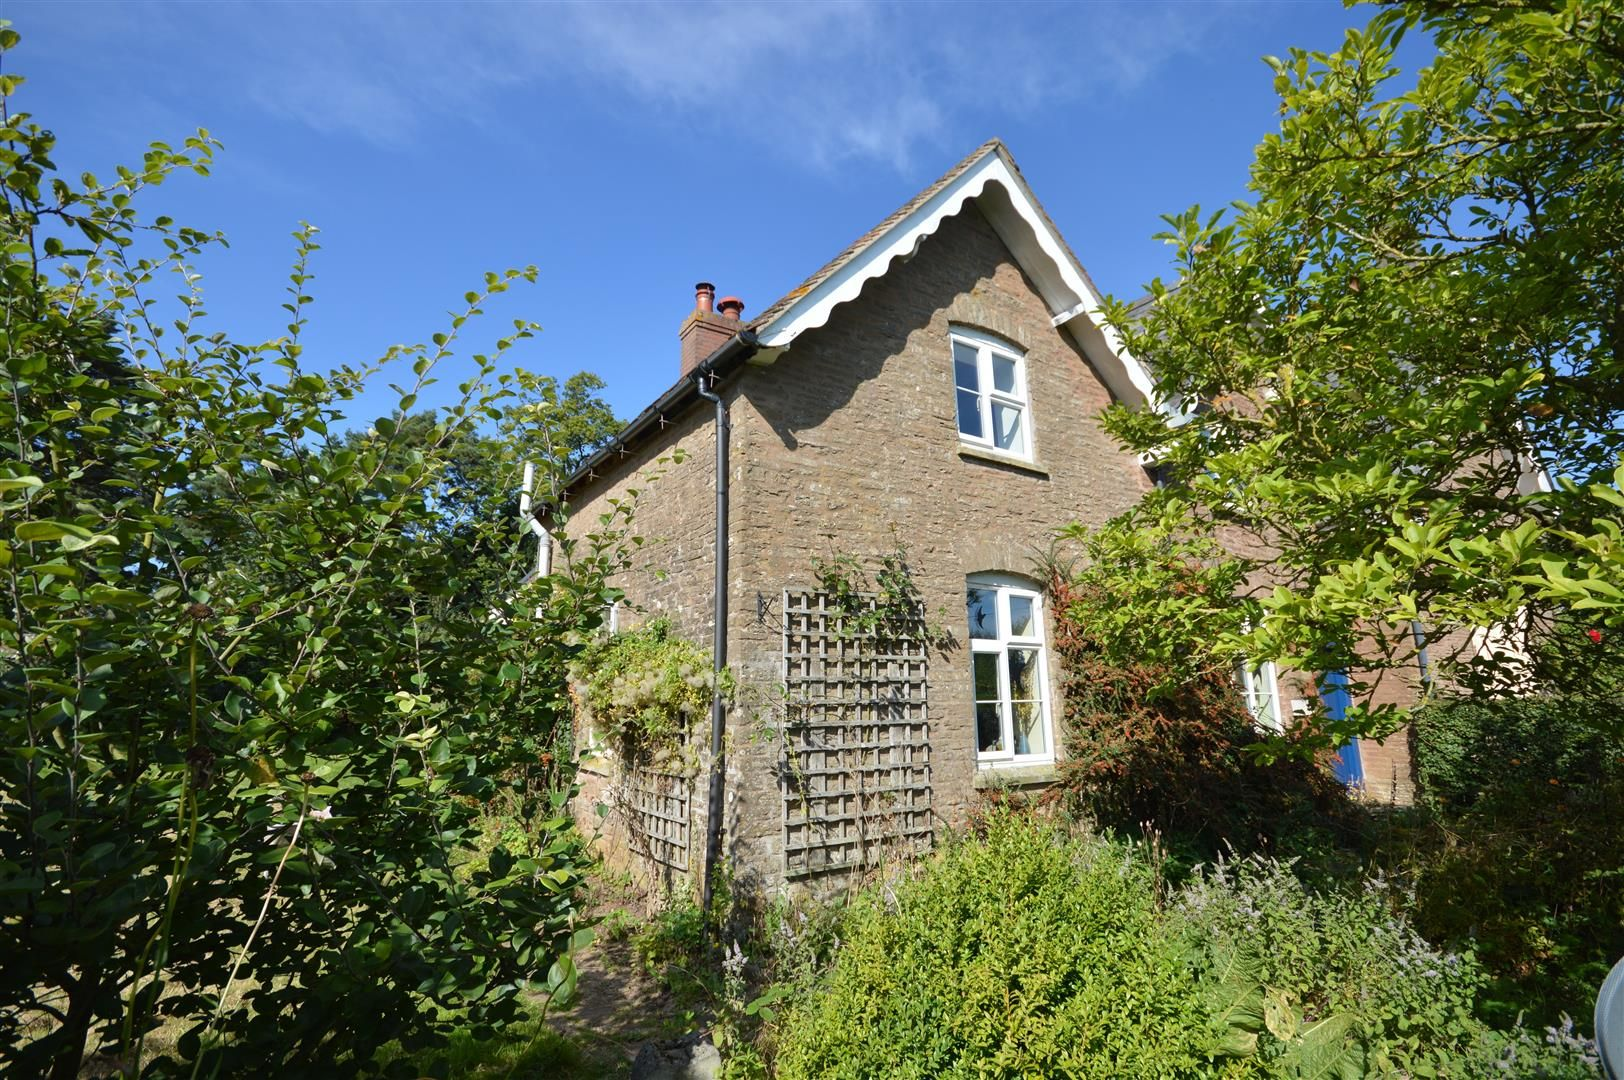 3 bed semi-detached for sale in Hatfield  - Property Image 1